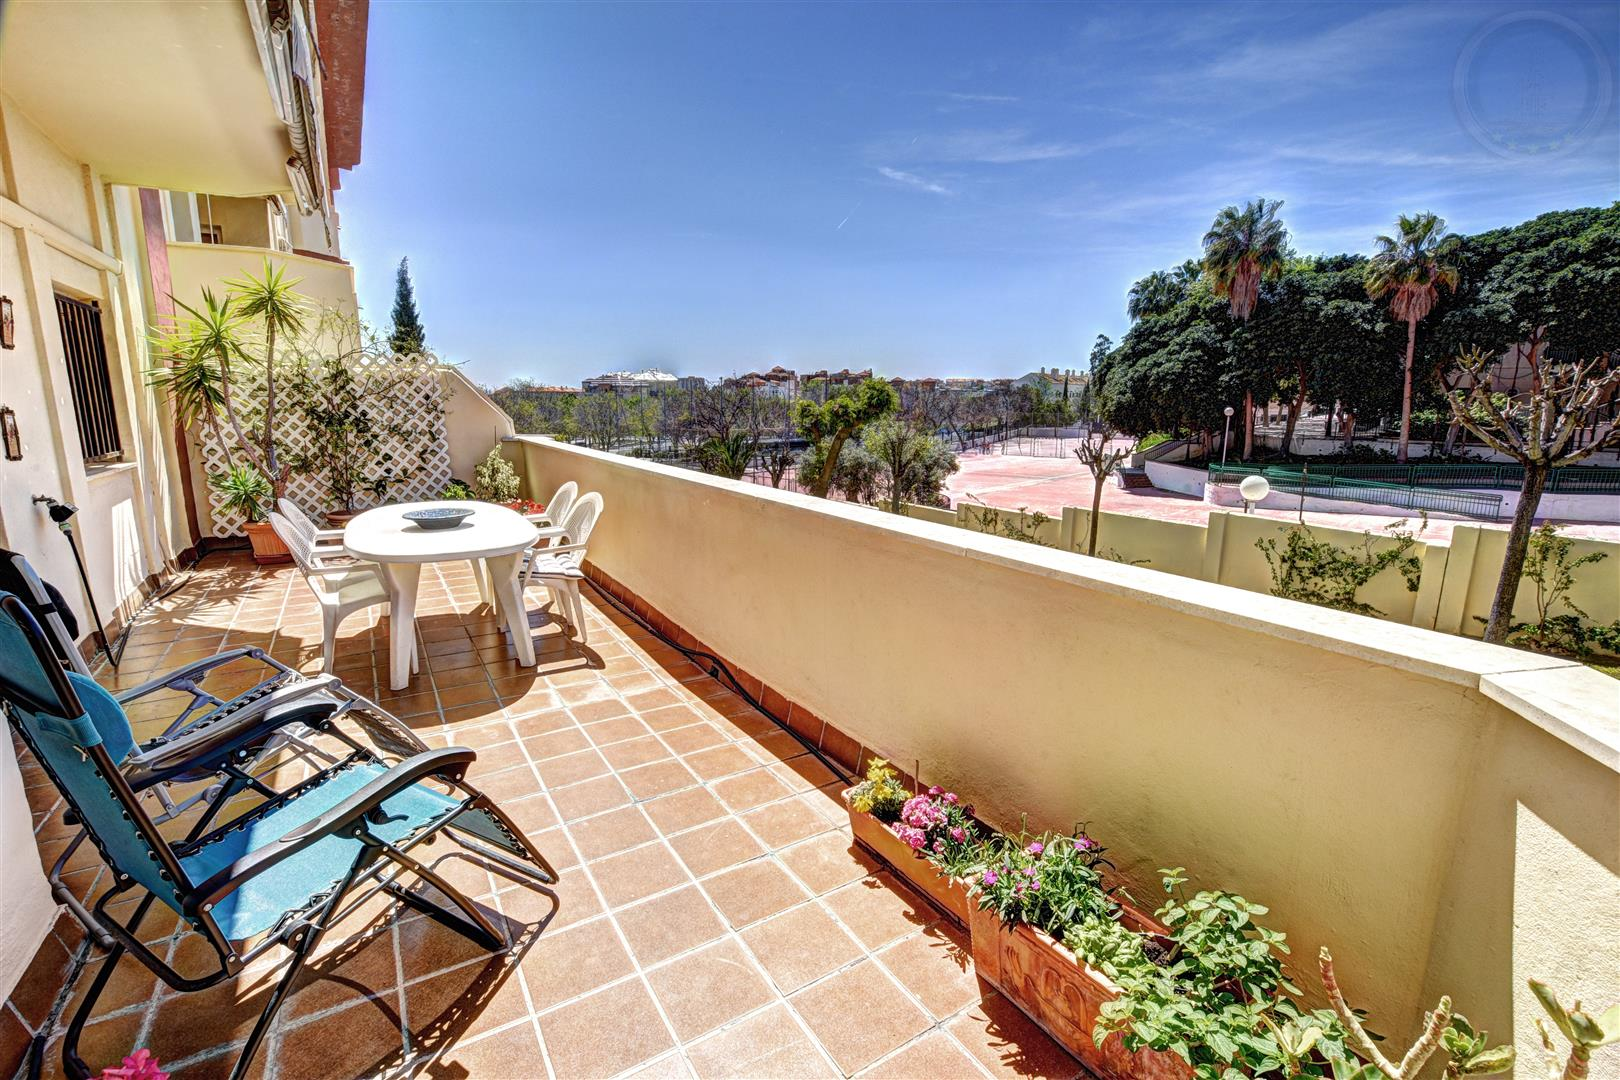 Apartment for sale in Arroyo de la Miel 1